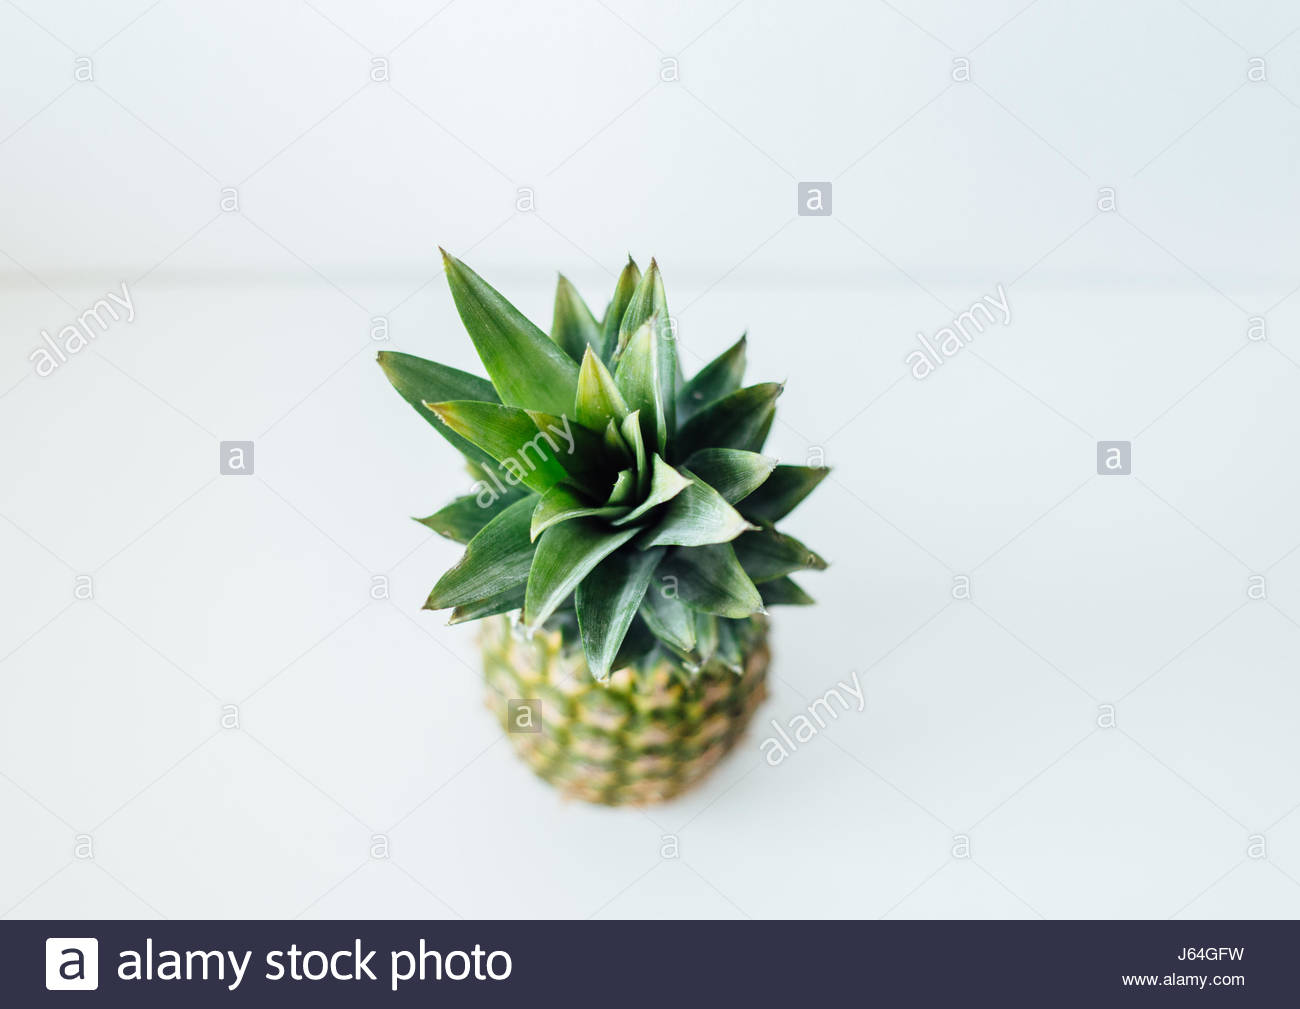 Pineapple fruit studio shot, high angle view - Stock Image